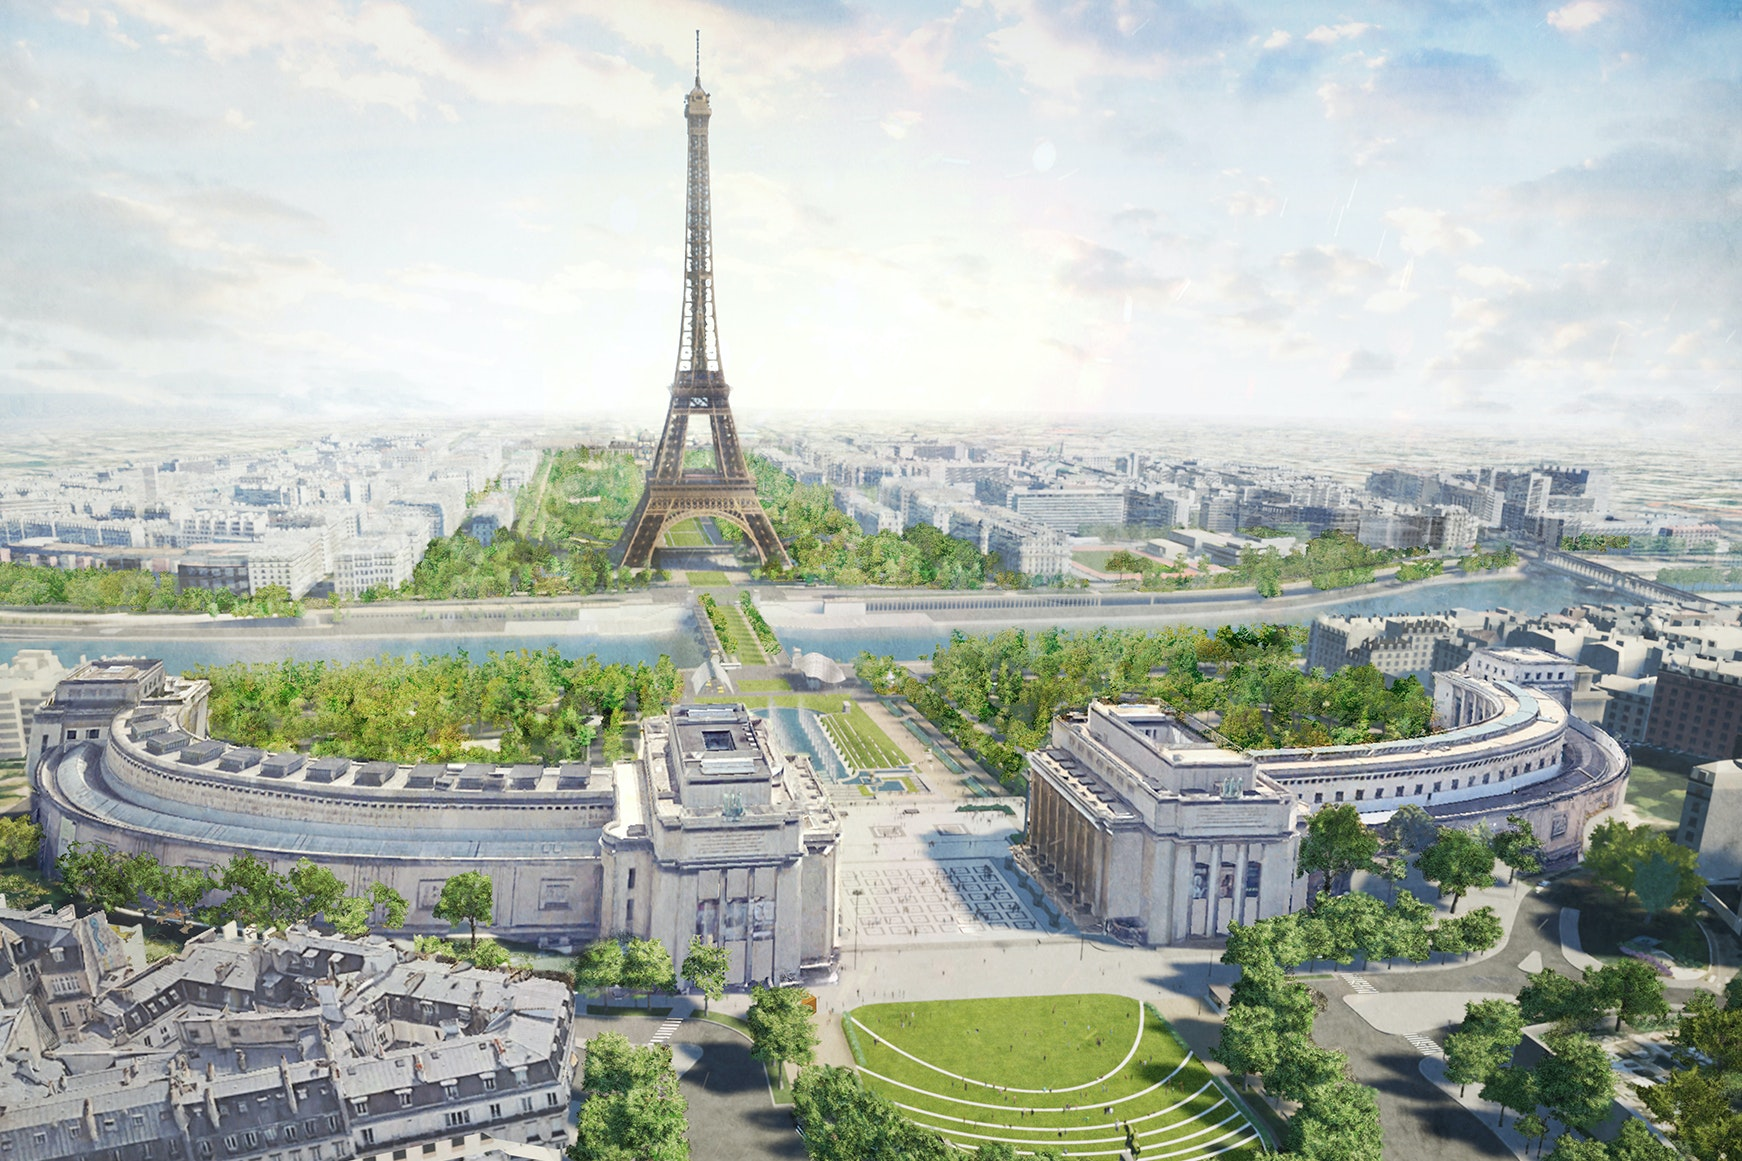 Oui, the Eiffel Tower Is Getting a Huge New Park